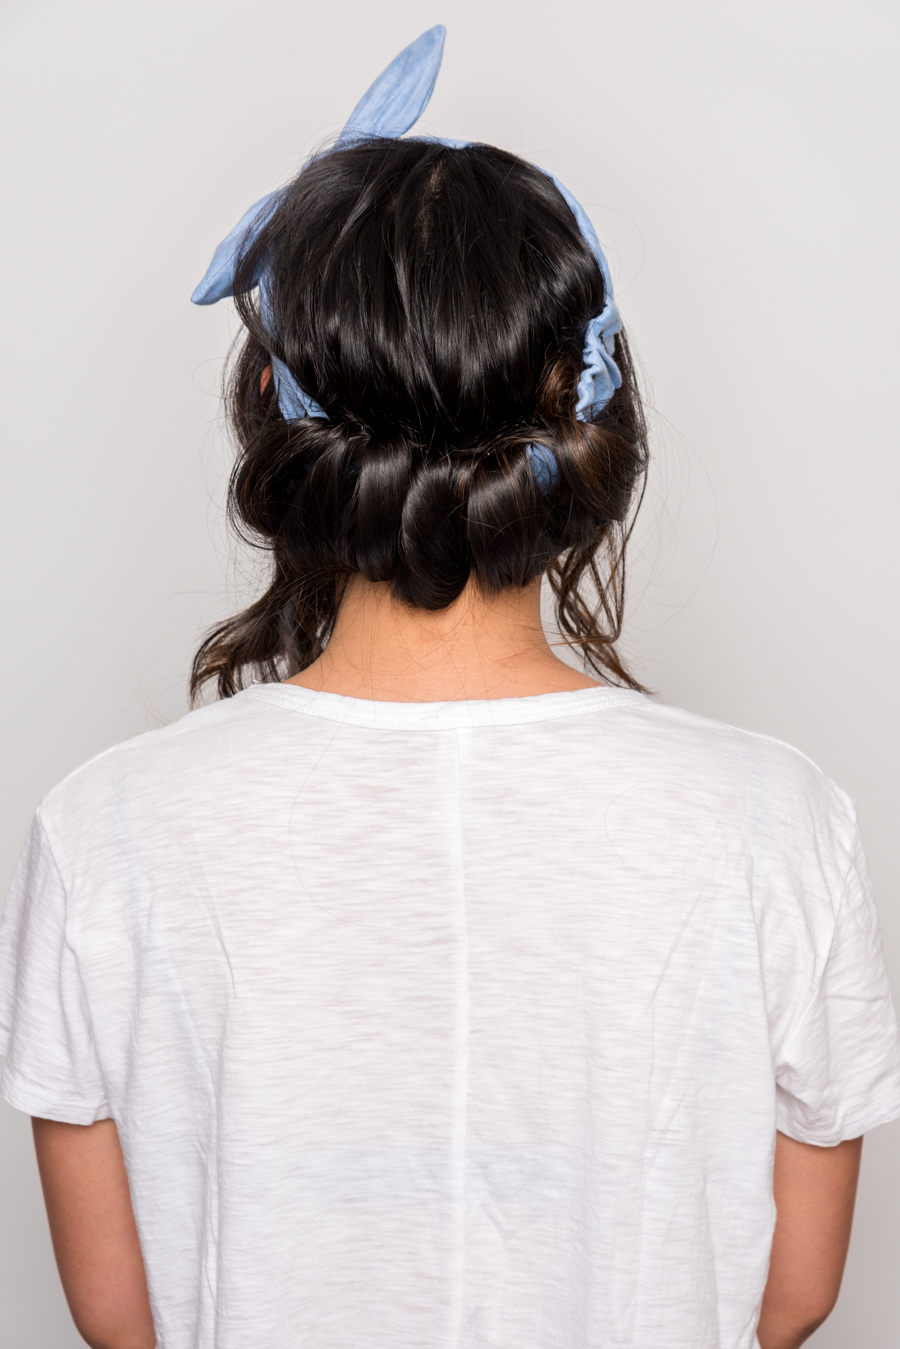 ROCK MAMA NYC LIFESTYLE BLOG -  HOW TO DO AN EASY HEADBAND UPDO